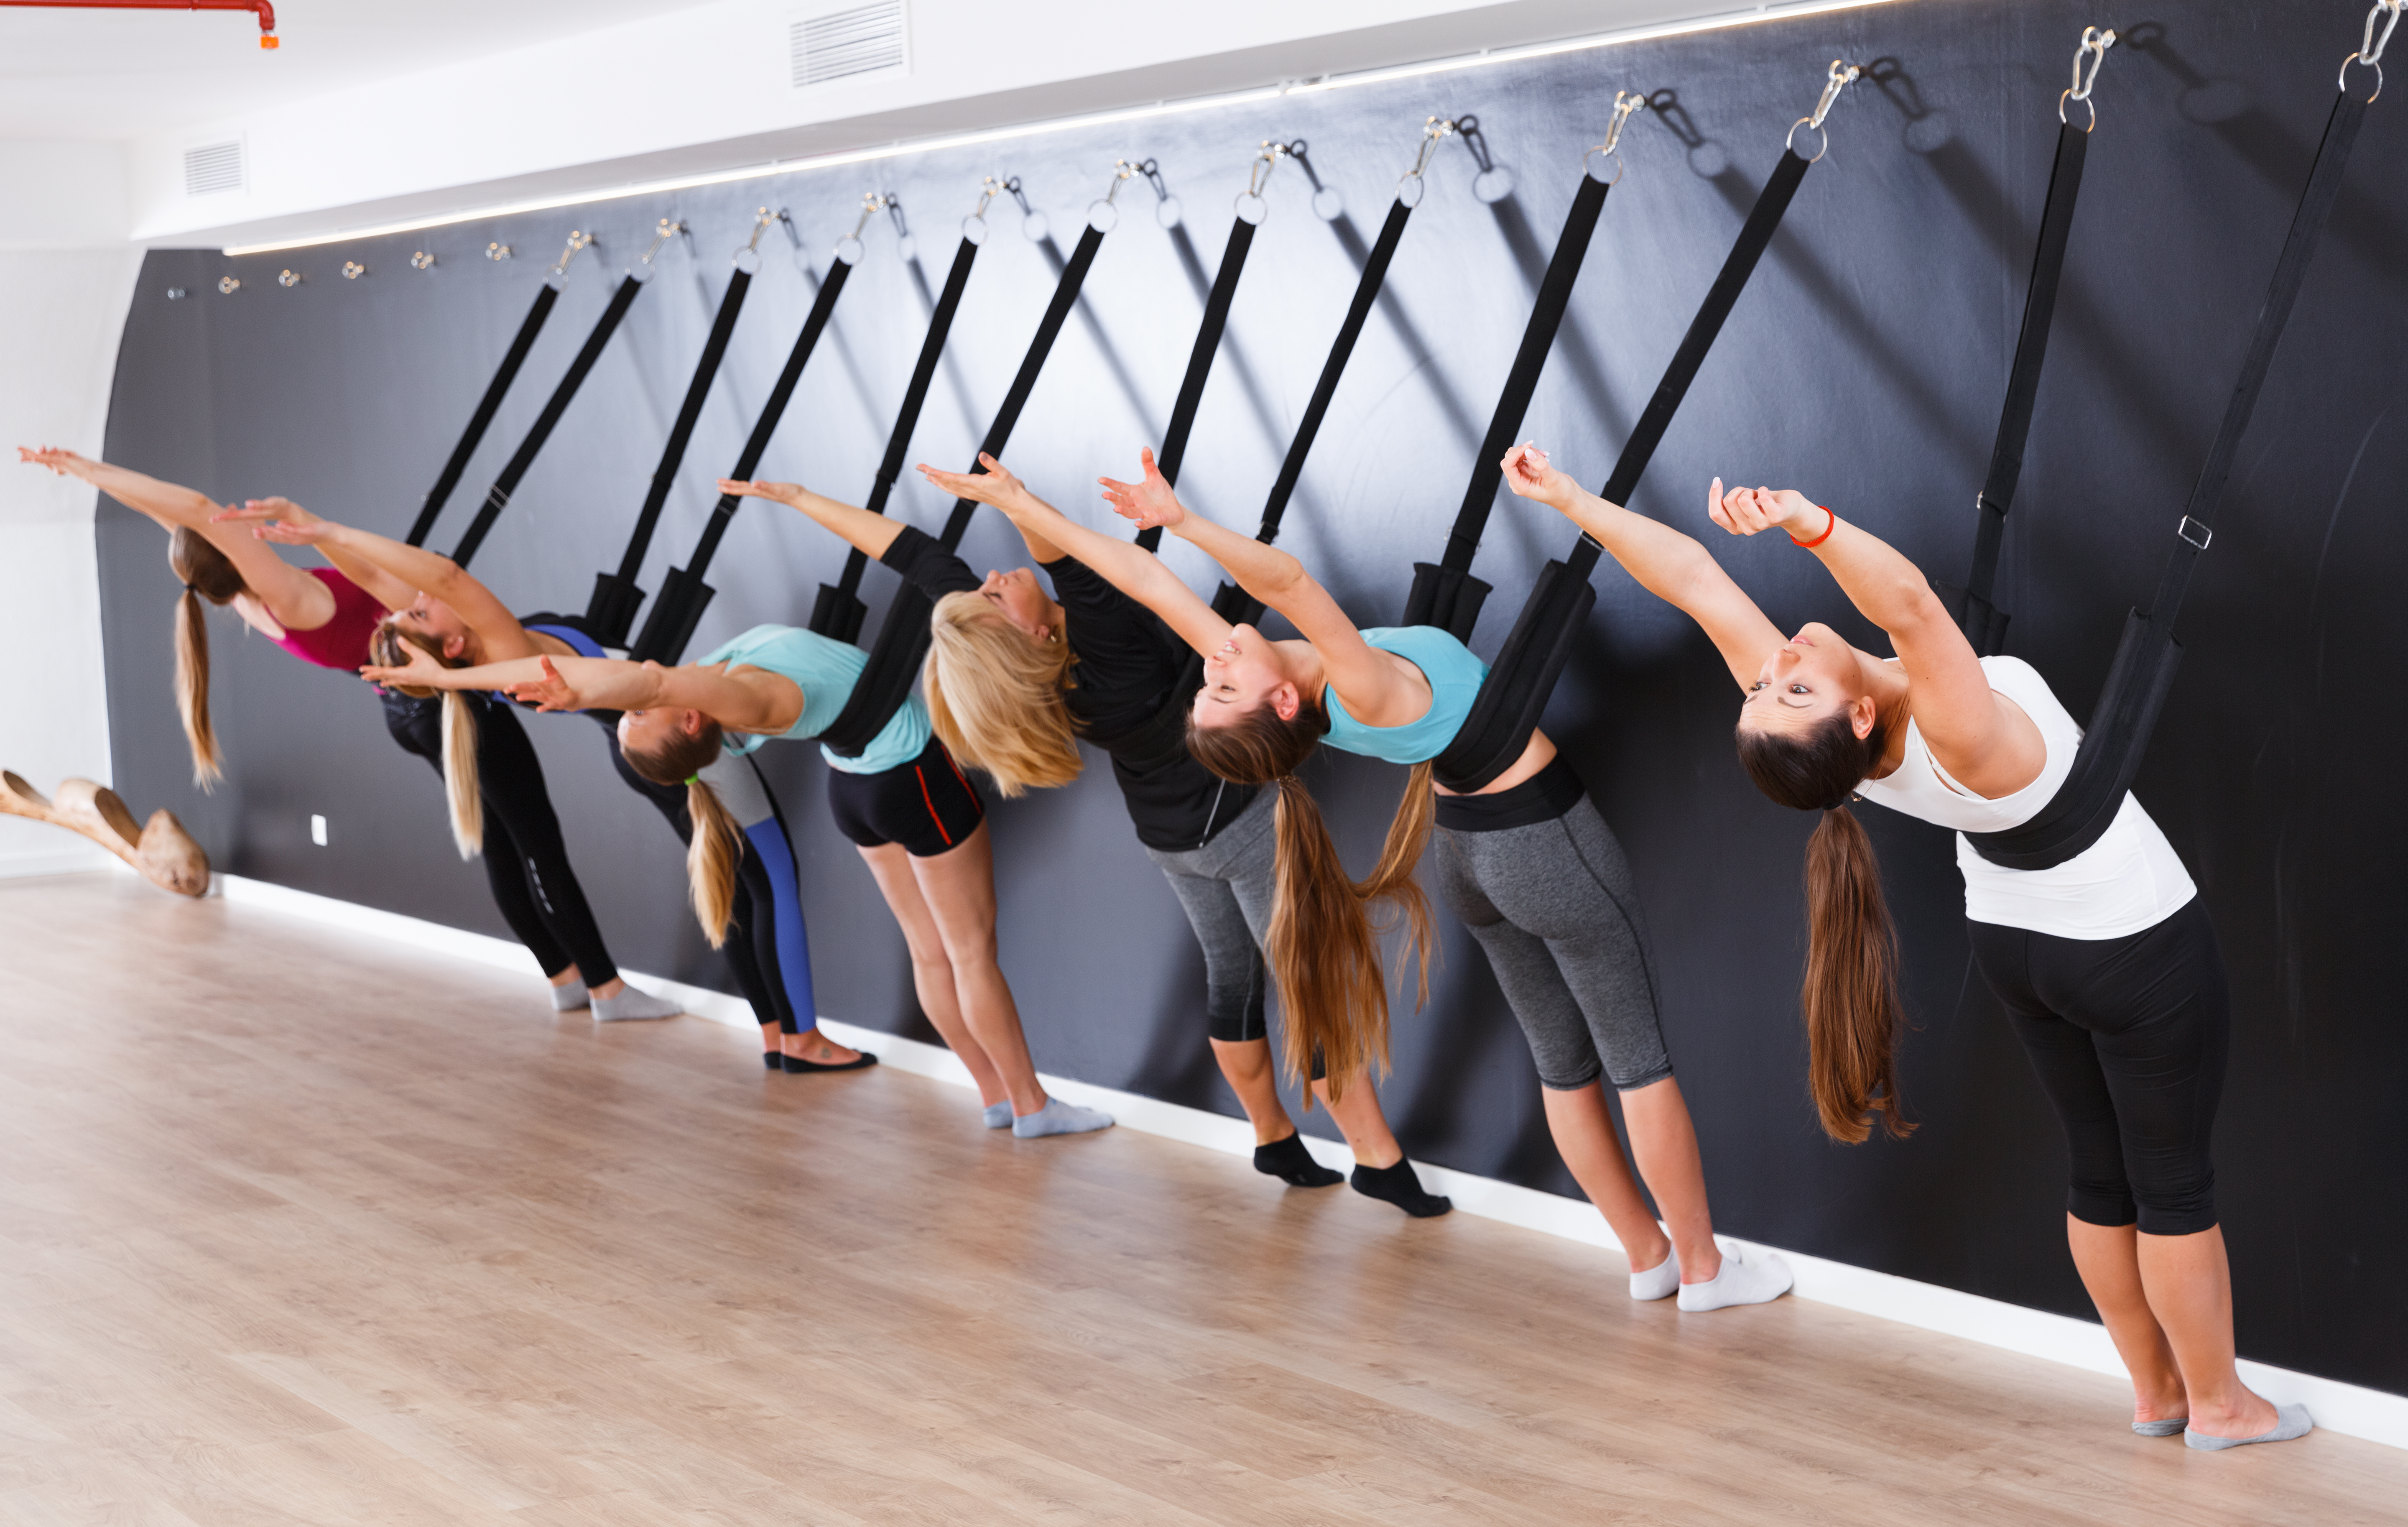 Yoga at the wall, support and alignment, yoga stretches, Iyengar Yoga, using the wall in yoga